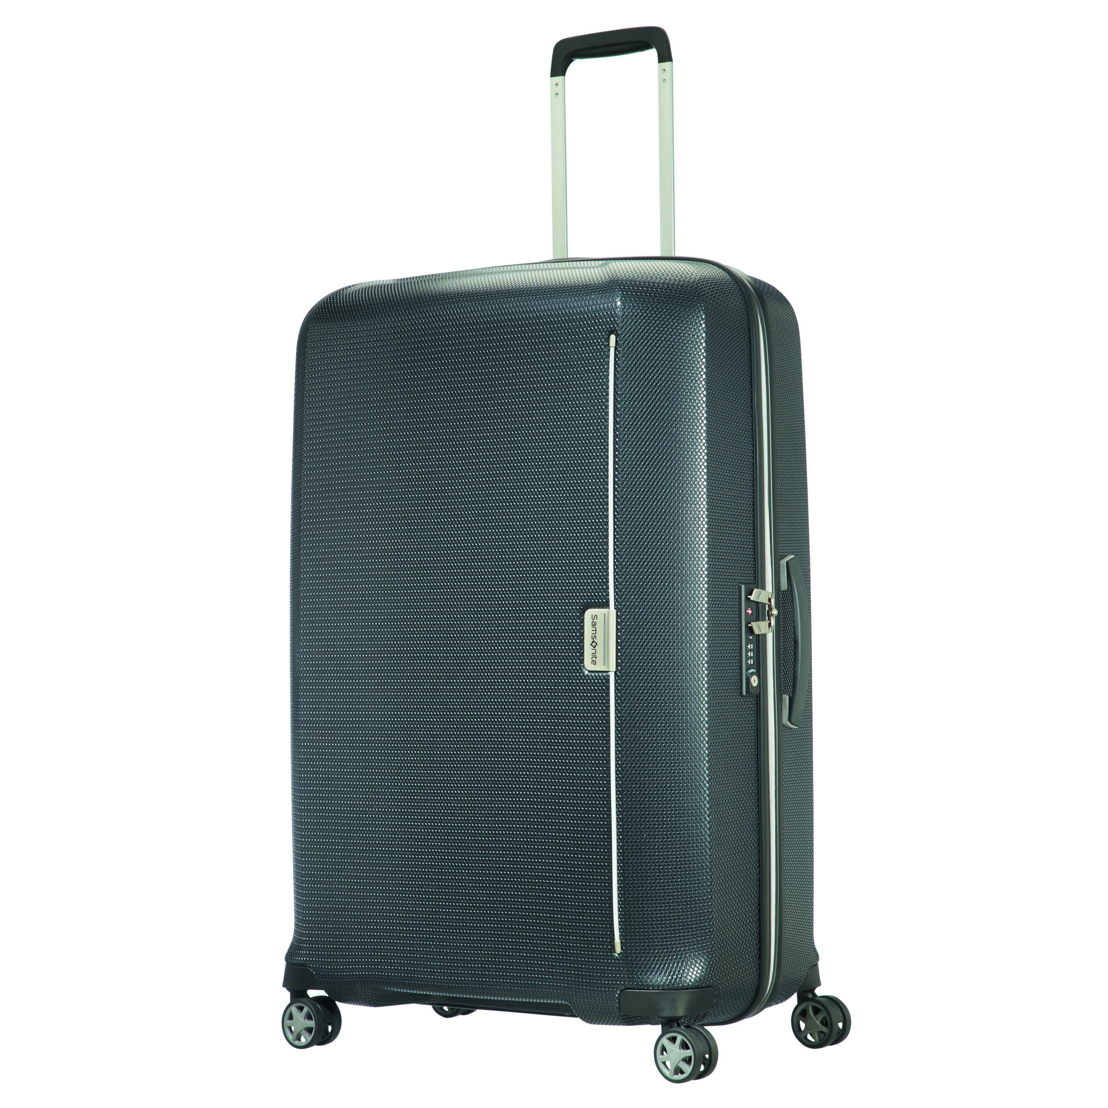 Samsonite_MIXMESH_Spinner 81_Graphite/Gun metal